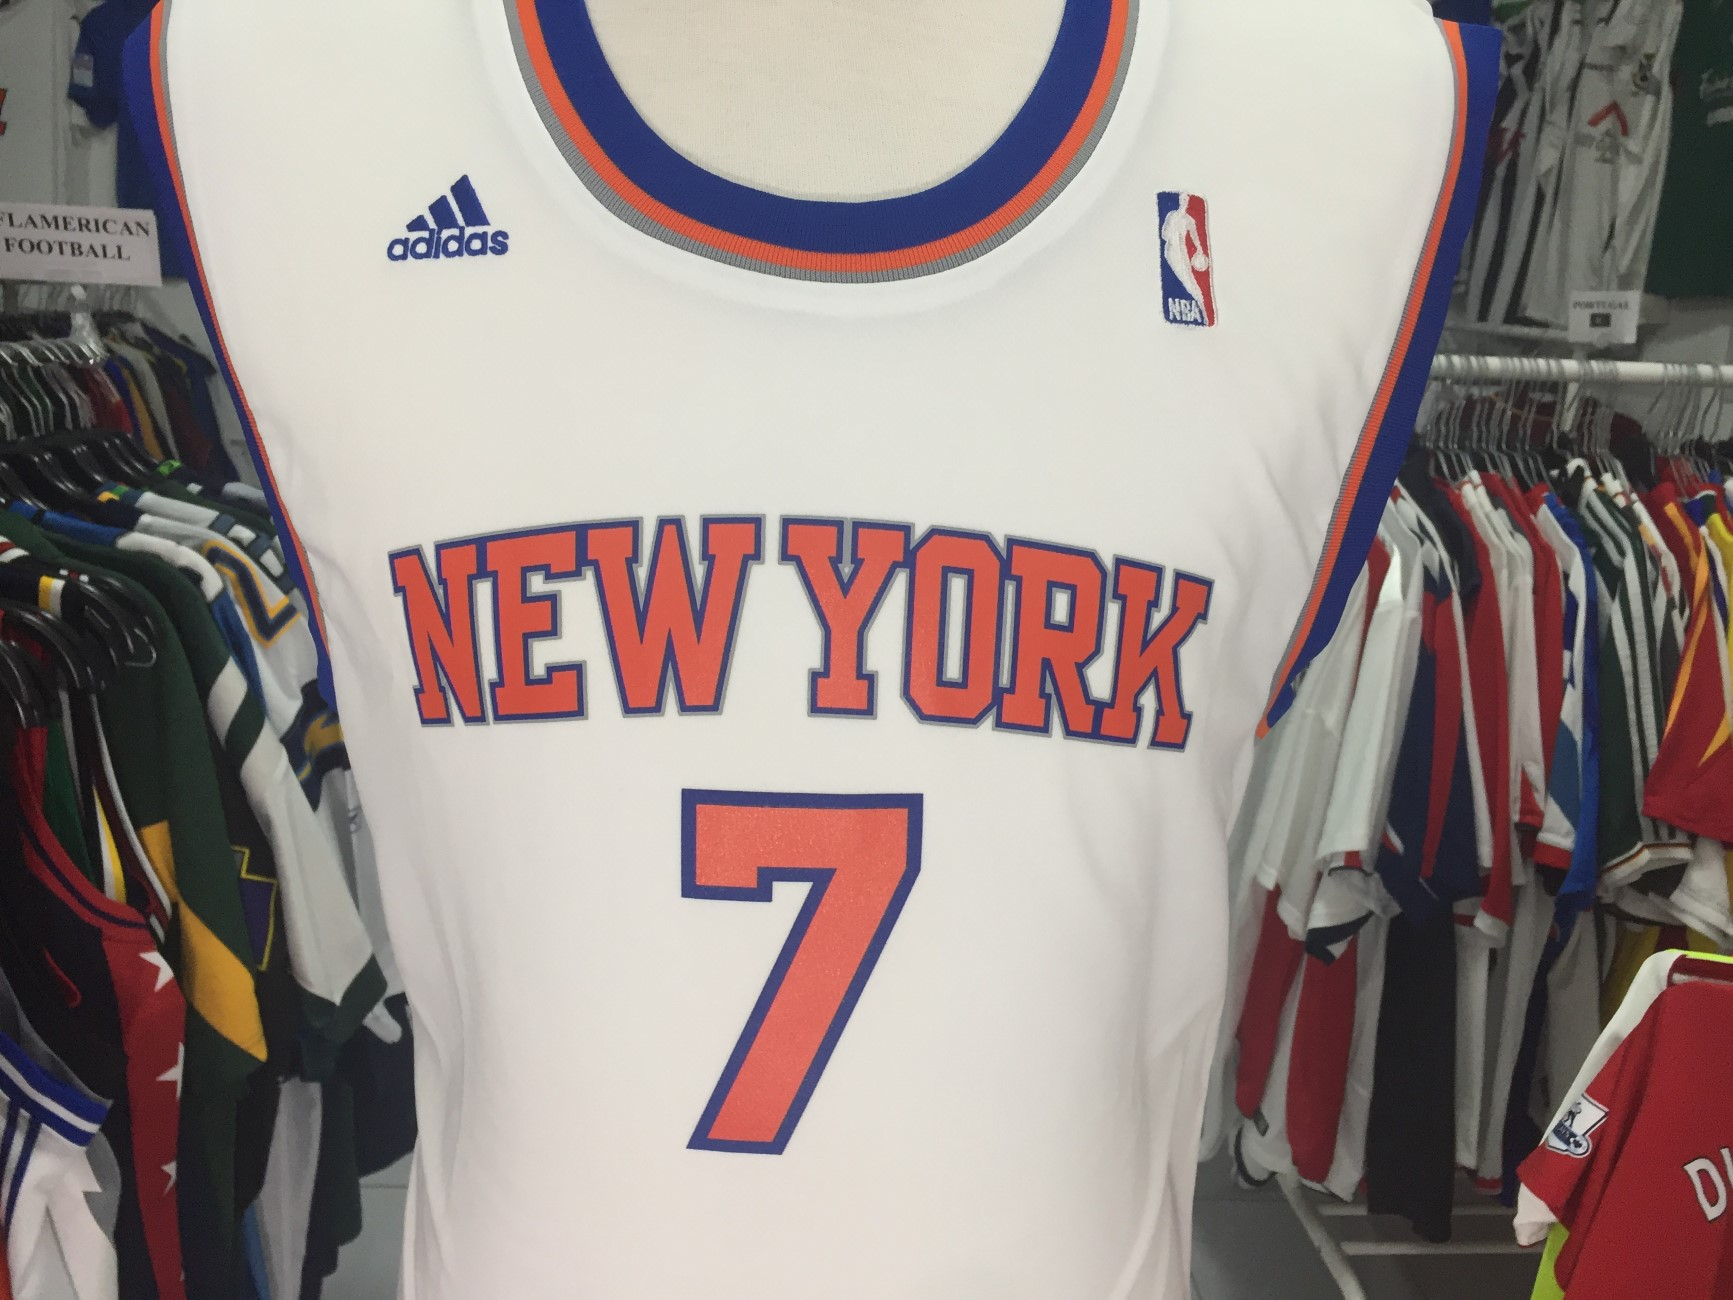 outlet store d087d 41520 New York Knicks Retro T Shirts - DREAMWORKS